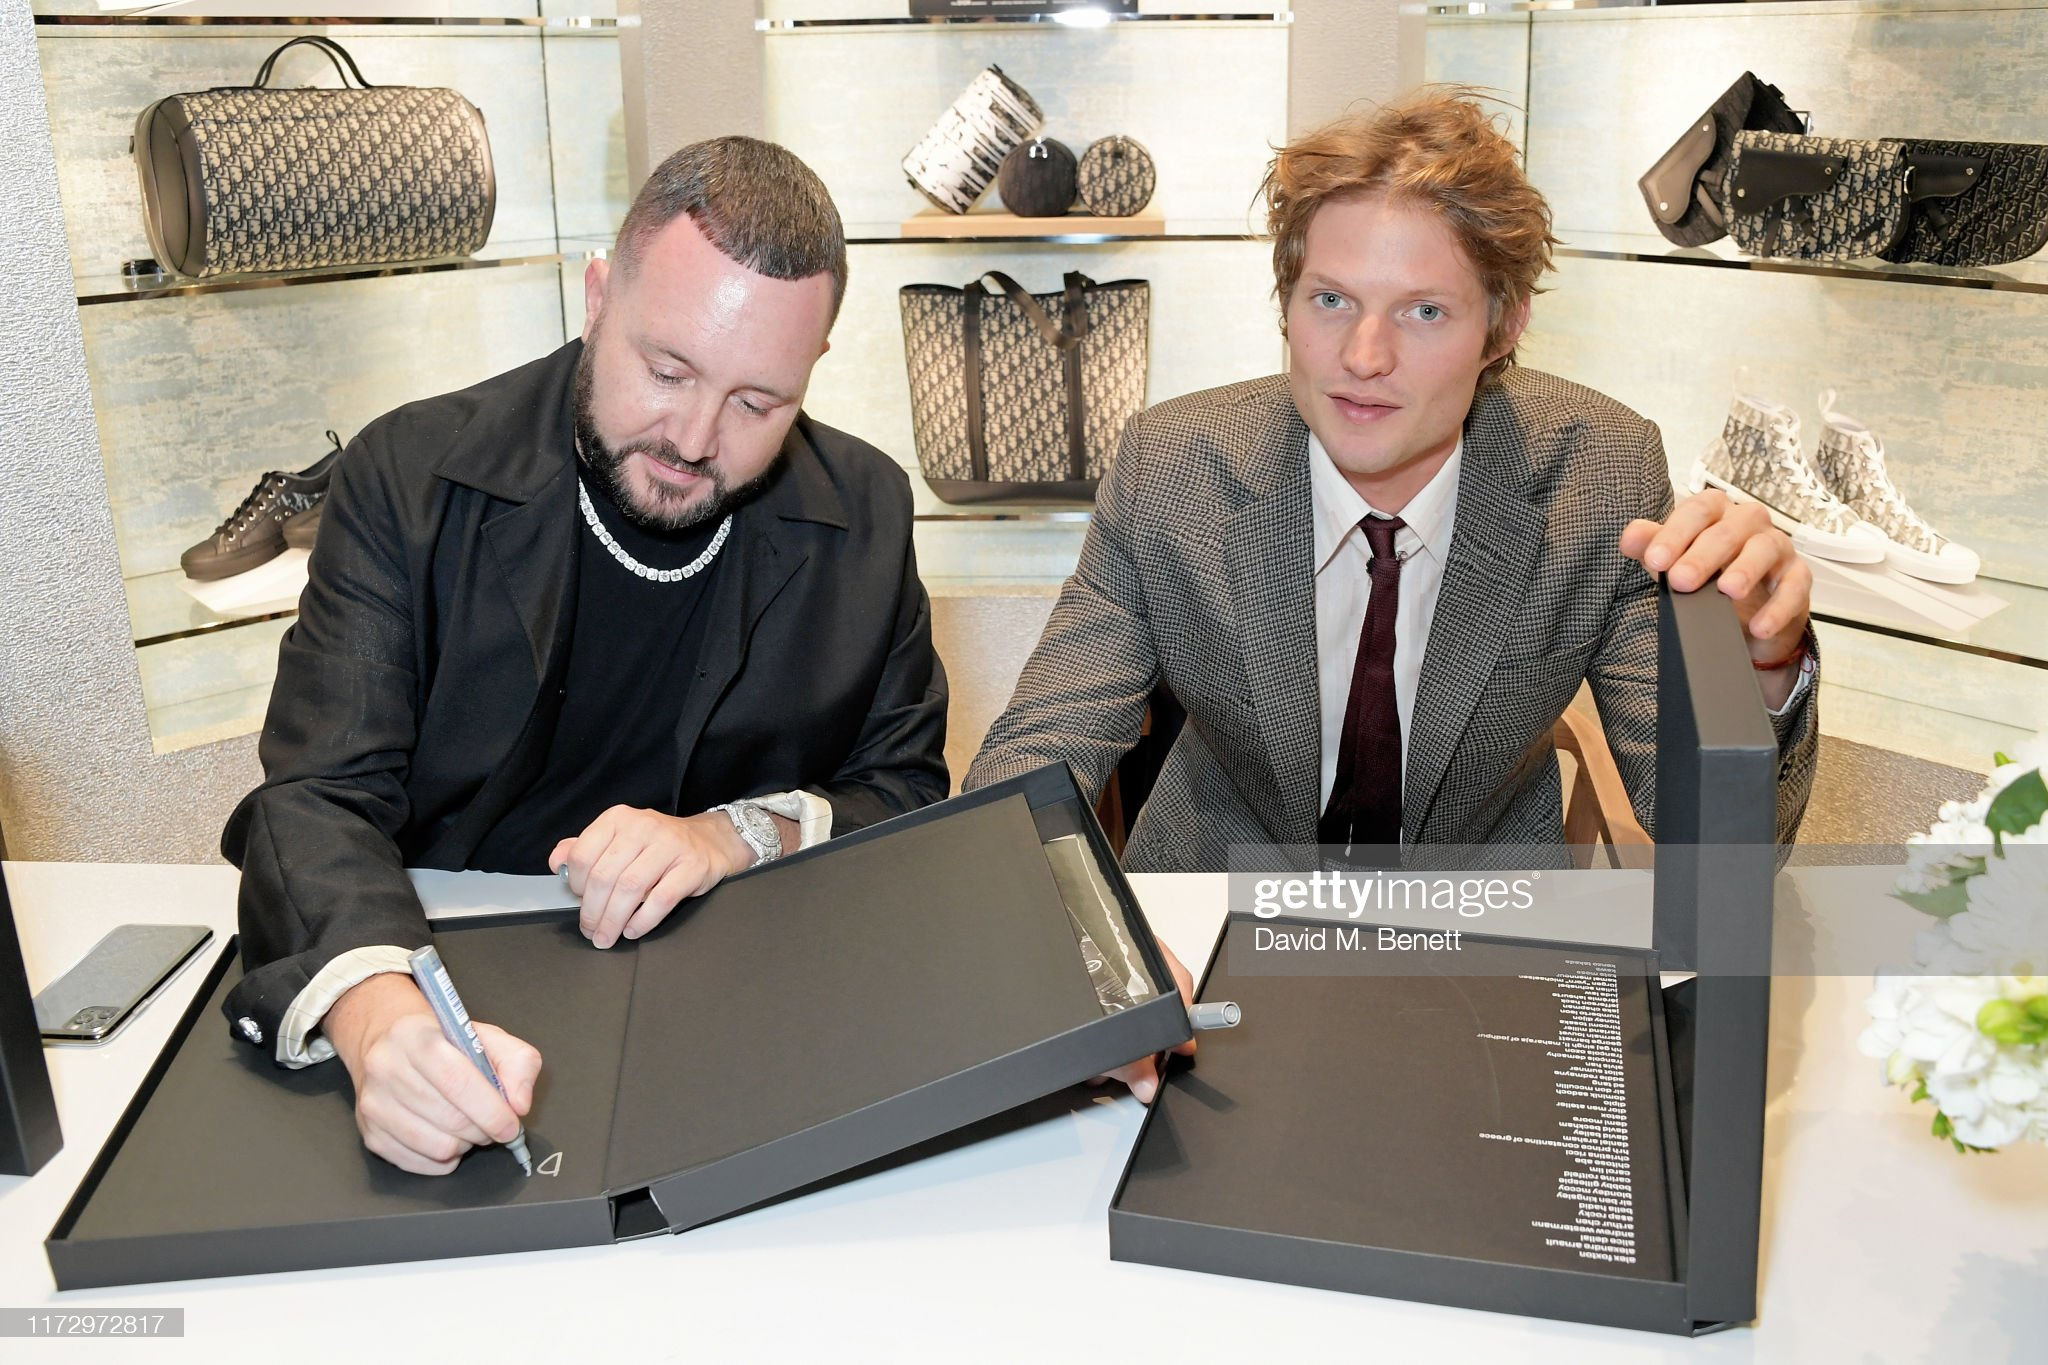 https://media.gettyimages.com/photos/kim-jones-and-nikolai-von-bismarck-attend-the-dior-sessions-book-on-picture-id1172972817?s=2048x2048